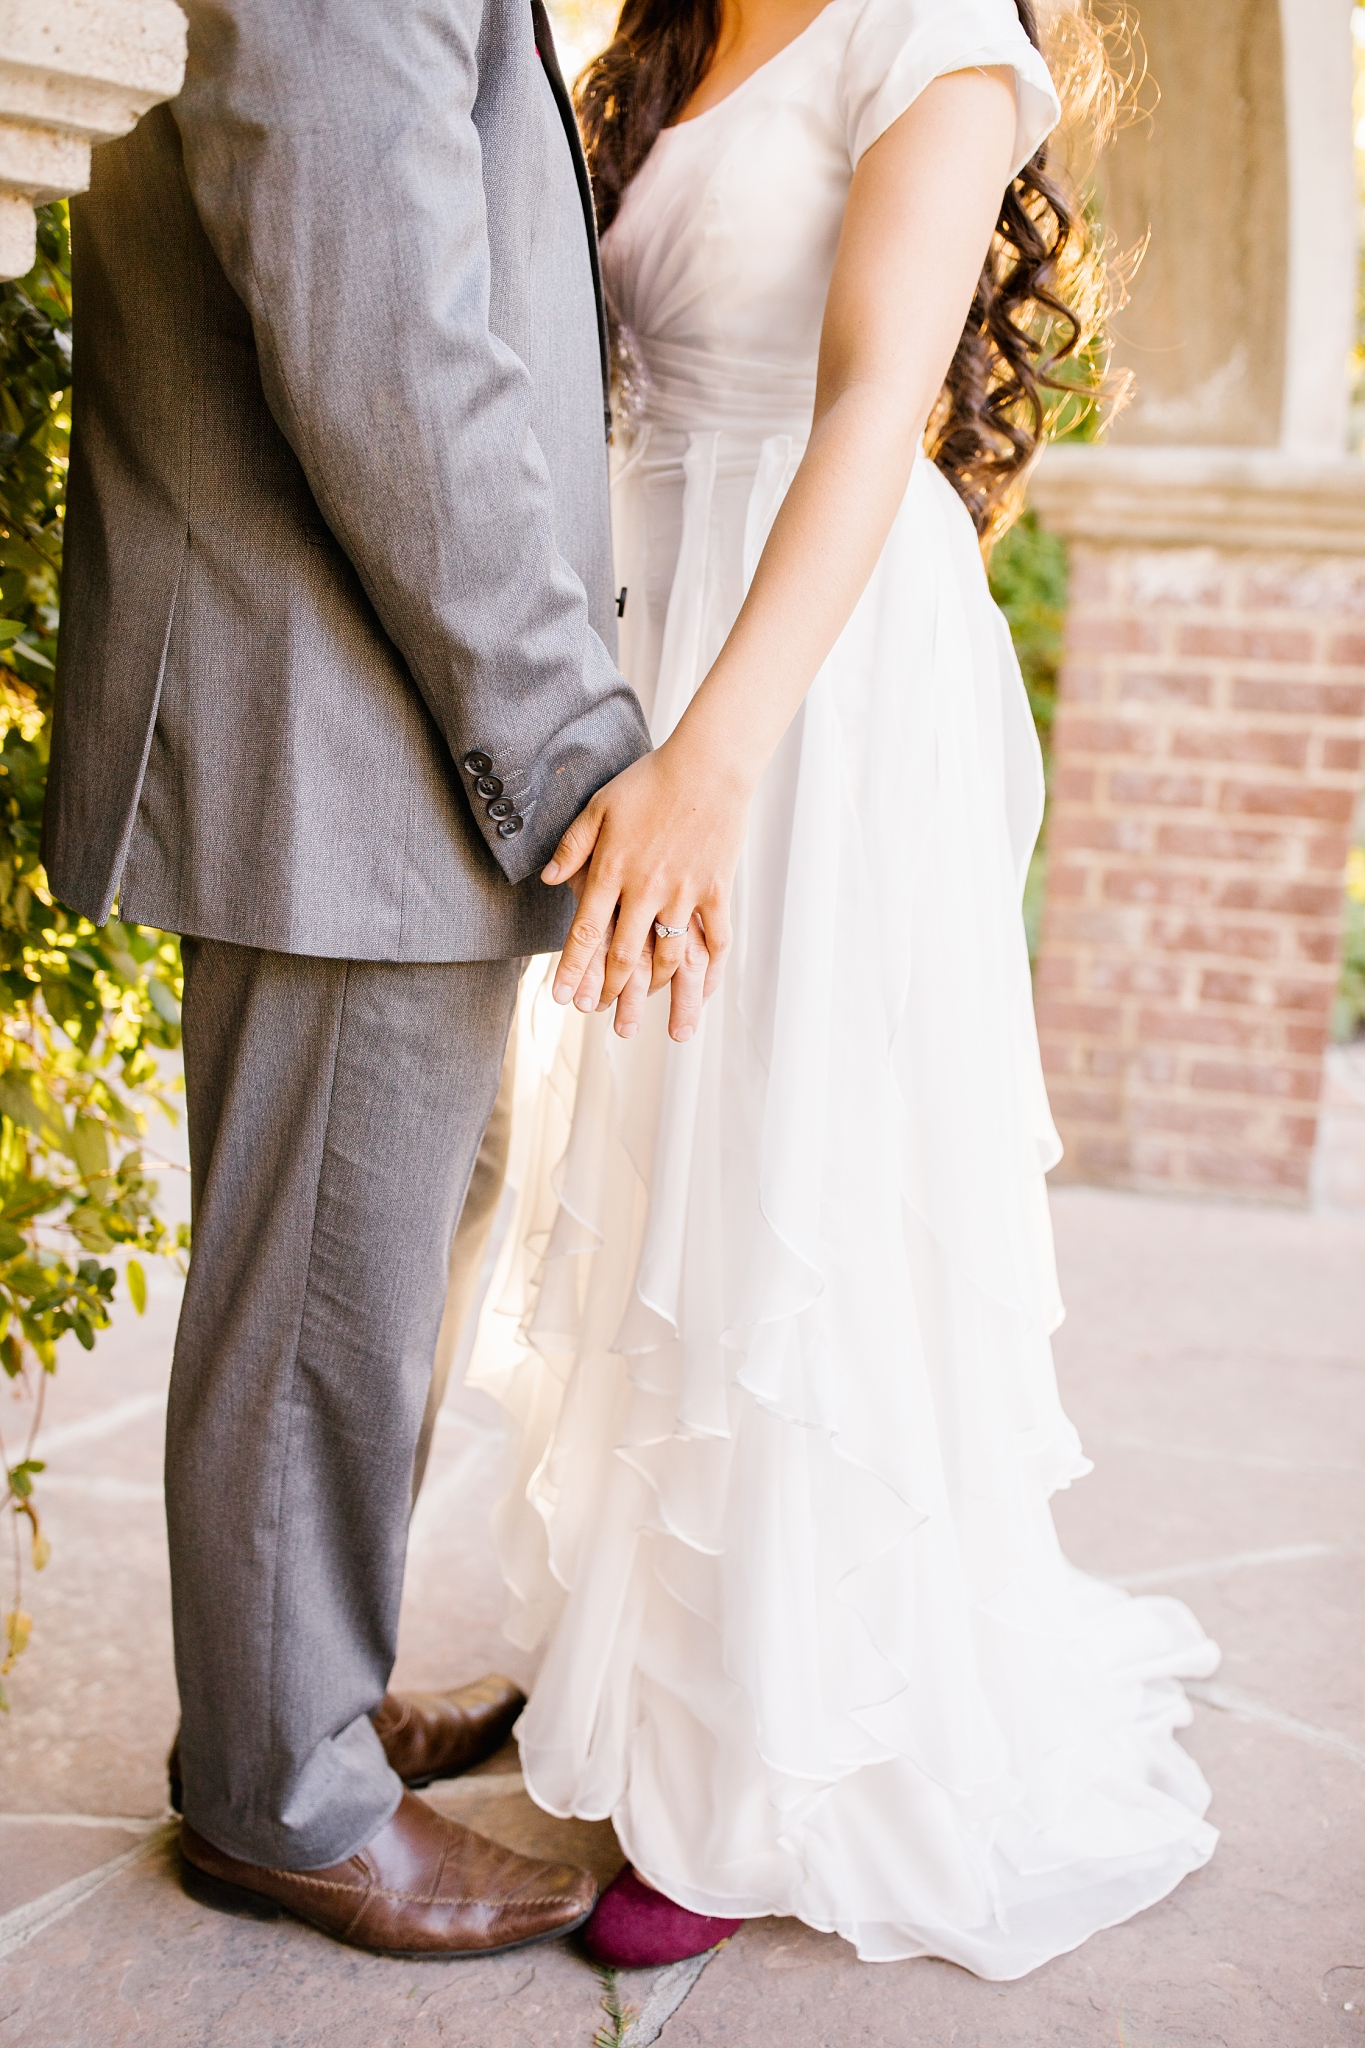 JB-Bridals-14_Lizzie-B-Imagery-Utah-Wedding-Photographer-Thanksgiving-Point-Ashton-Gardens-Lehi-Utah.jpg